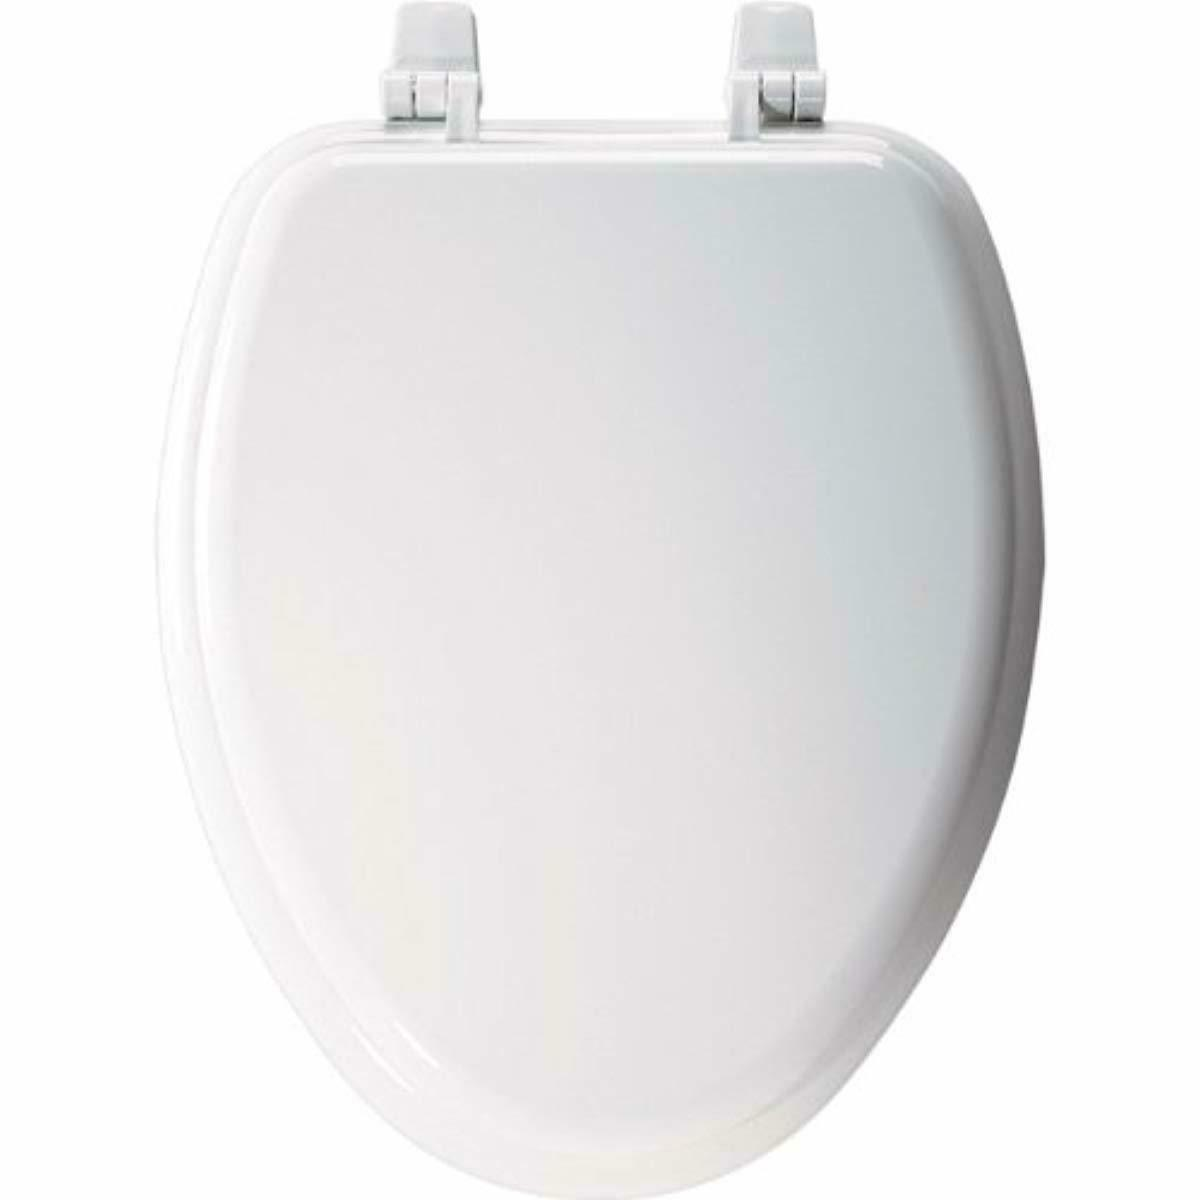 Astonishing Details About Bemis 1400Tta000 Molded Wood Elongated Toilet Seat Bathroom Fixtures White 1 Pc Pabps2019 Chair Design Images Pabps2019Com